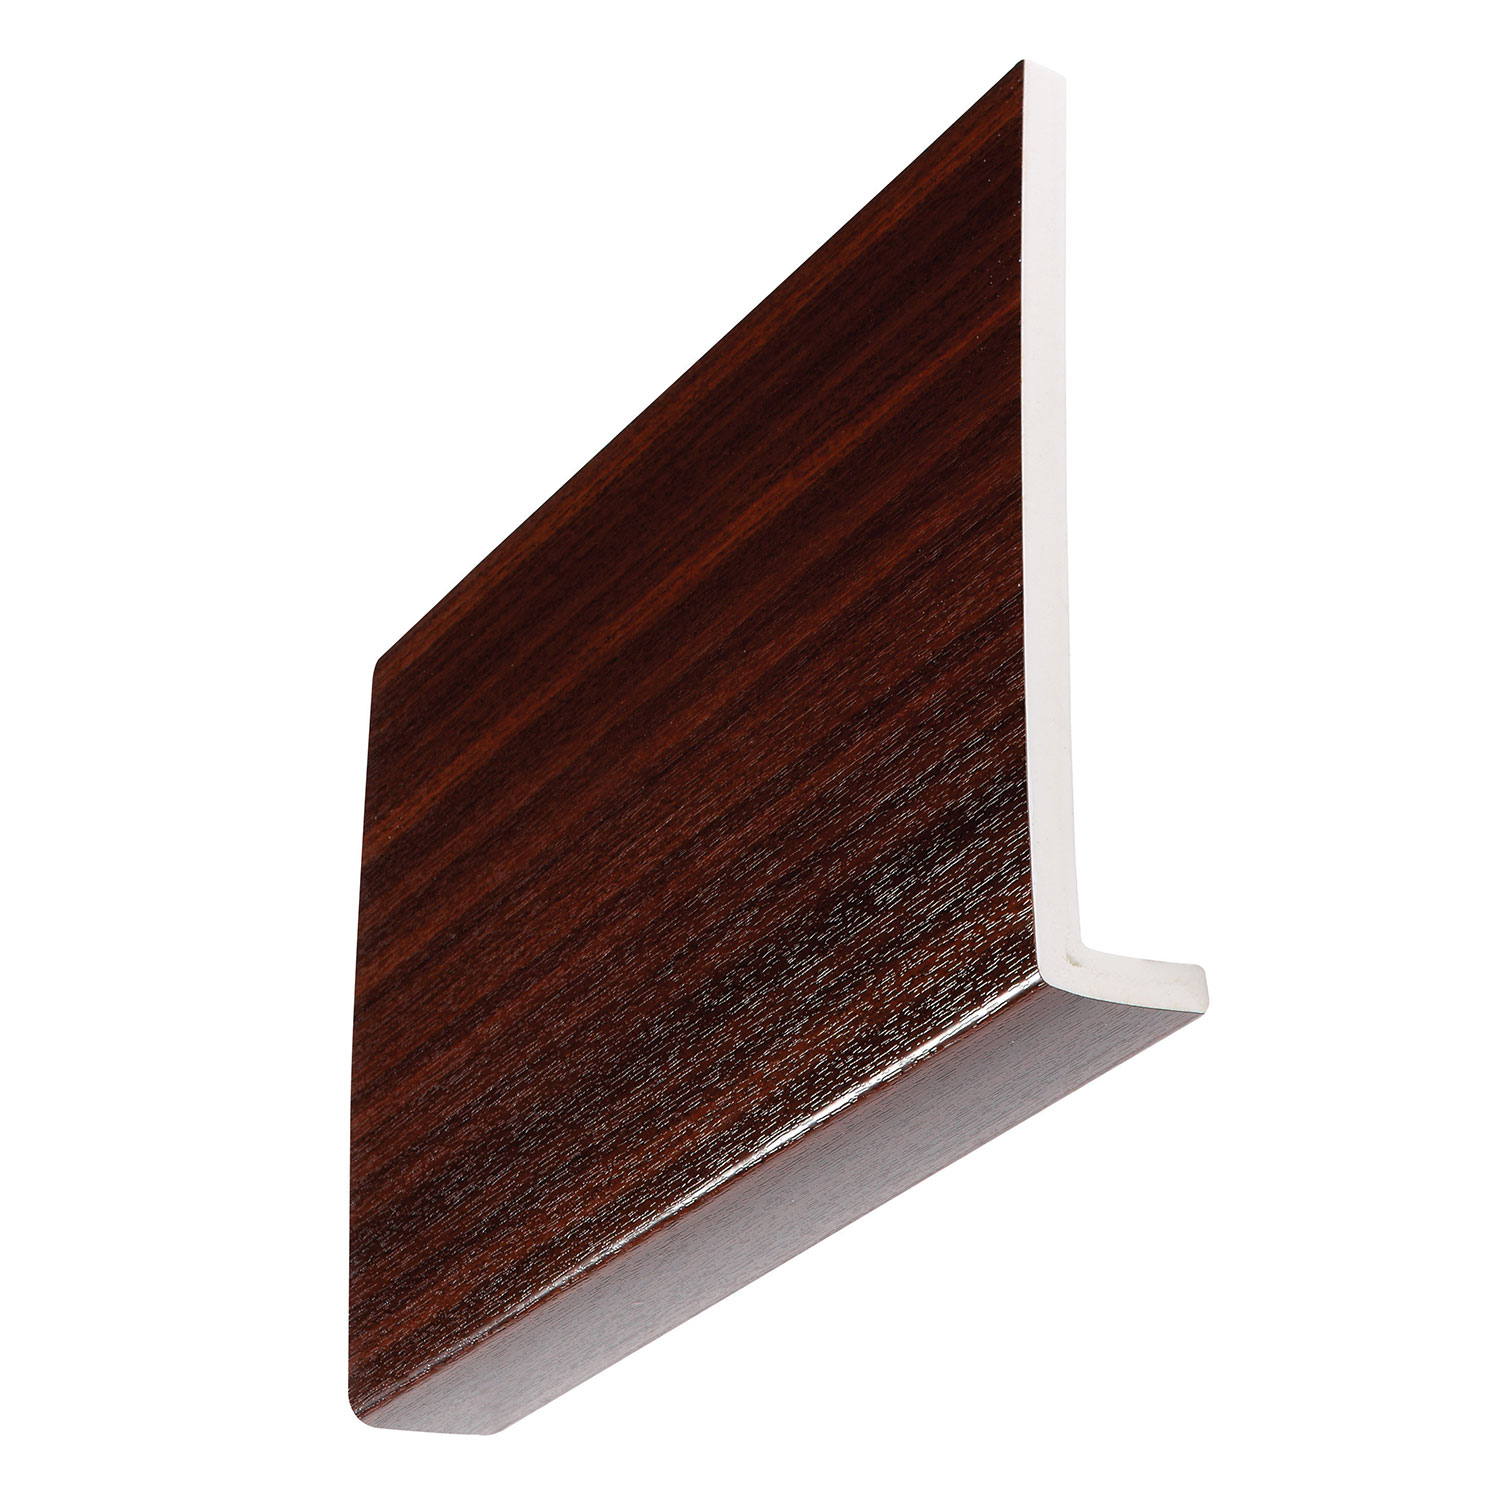 Fascia Board Fascia Boards High Quality Plain Roundnose And Ogee Fascia